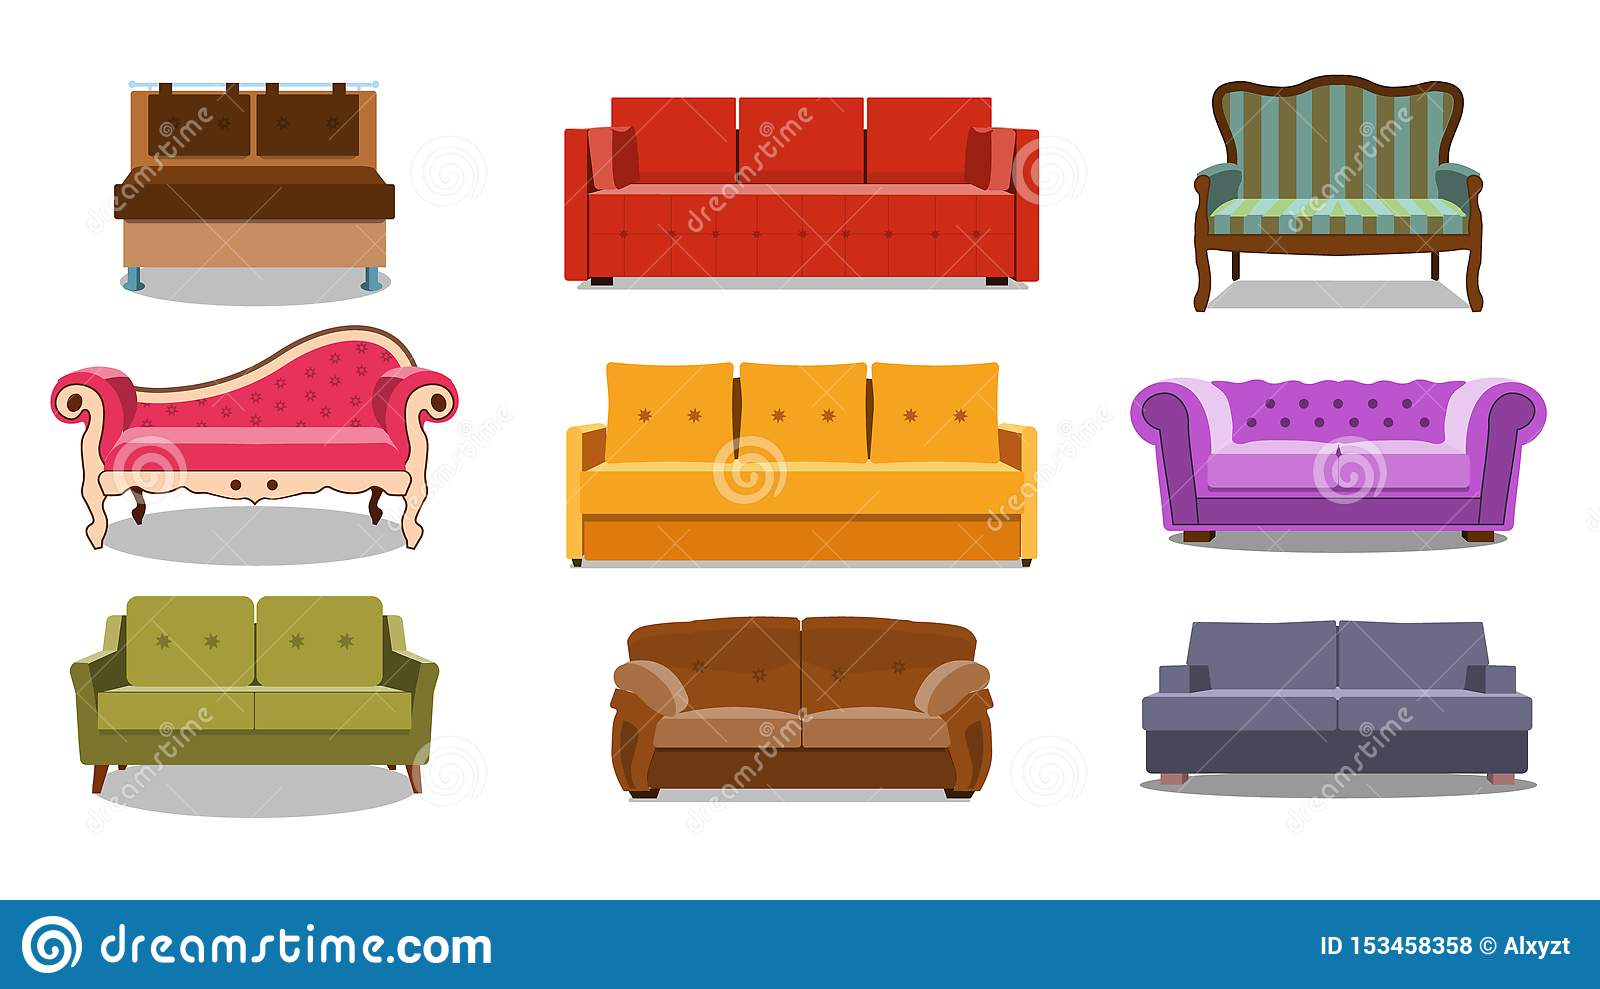 Sofa And Couches Colorful Cartoon Illustration Vector Set